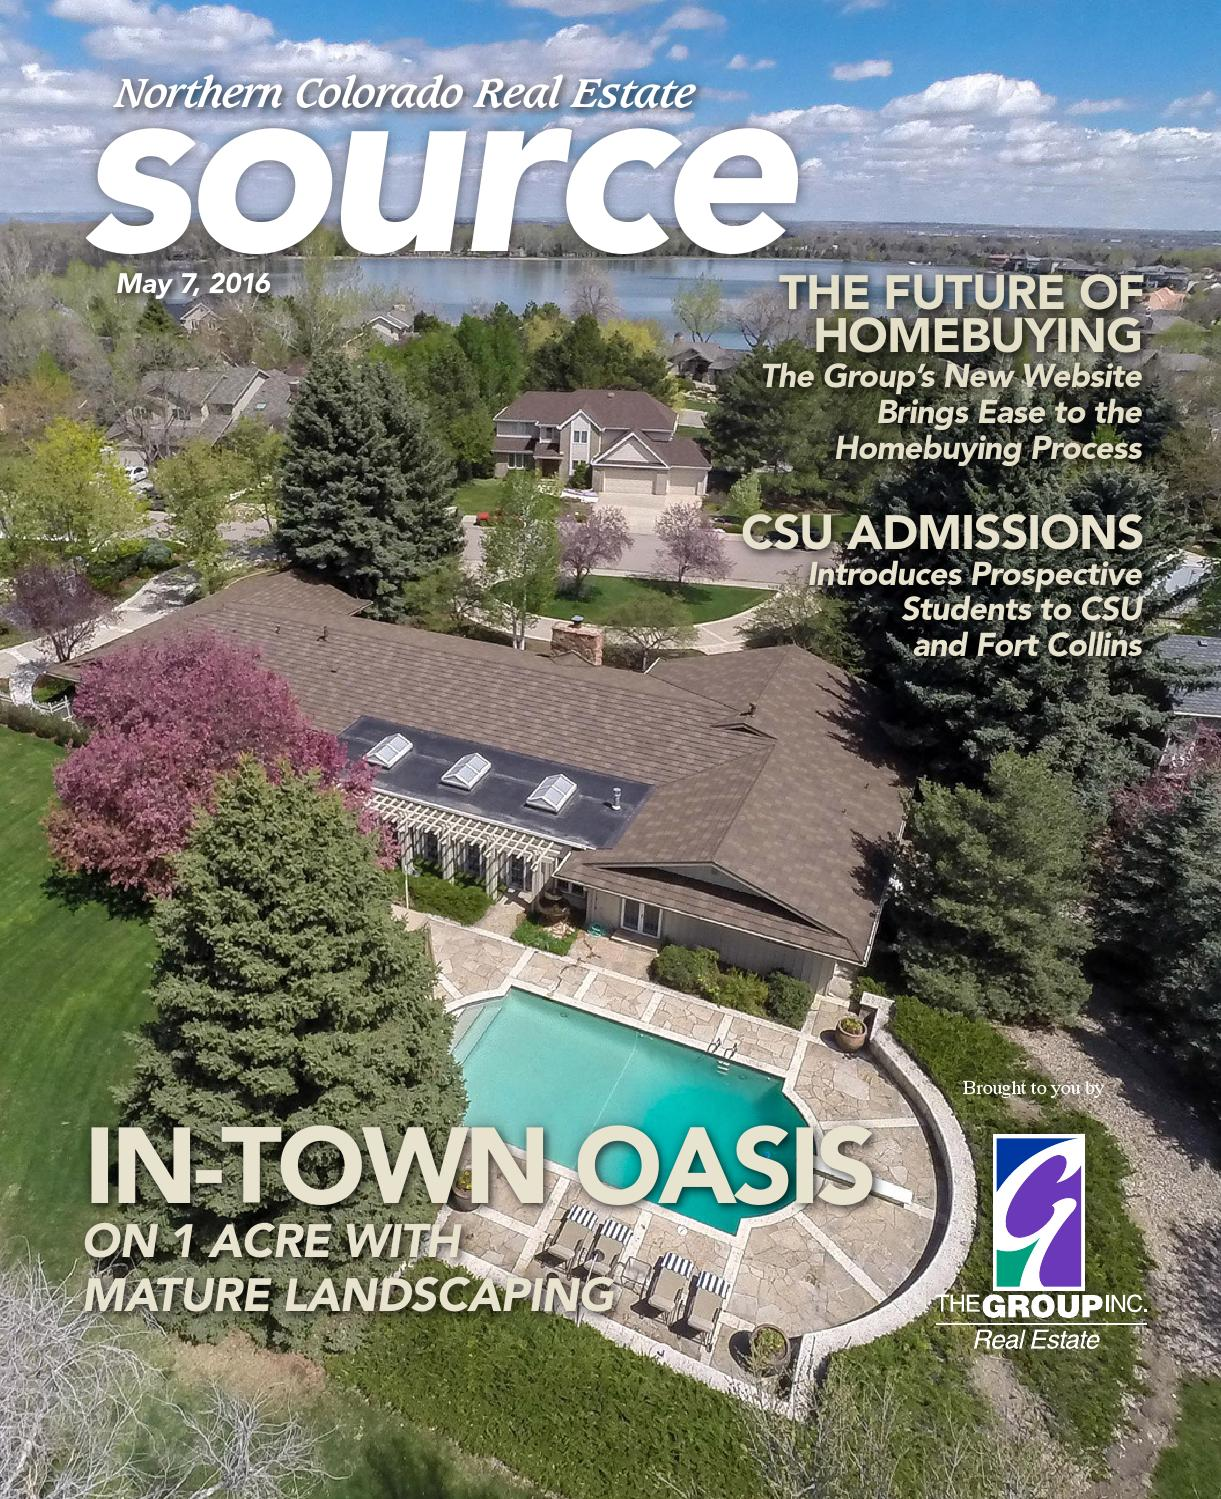 The Northern Colorado Real Estate Source-May 2016 By The